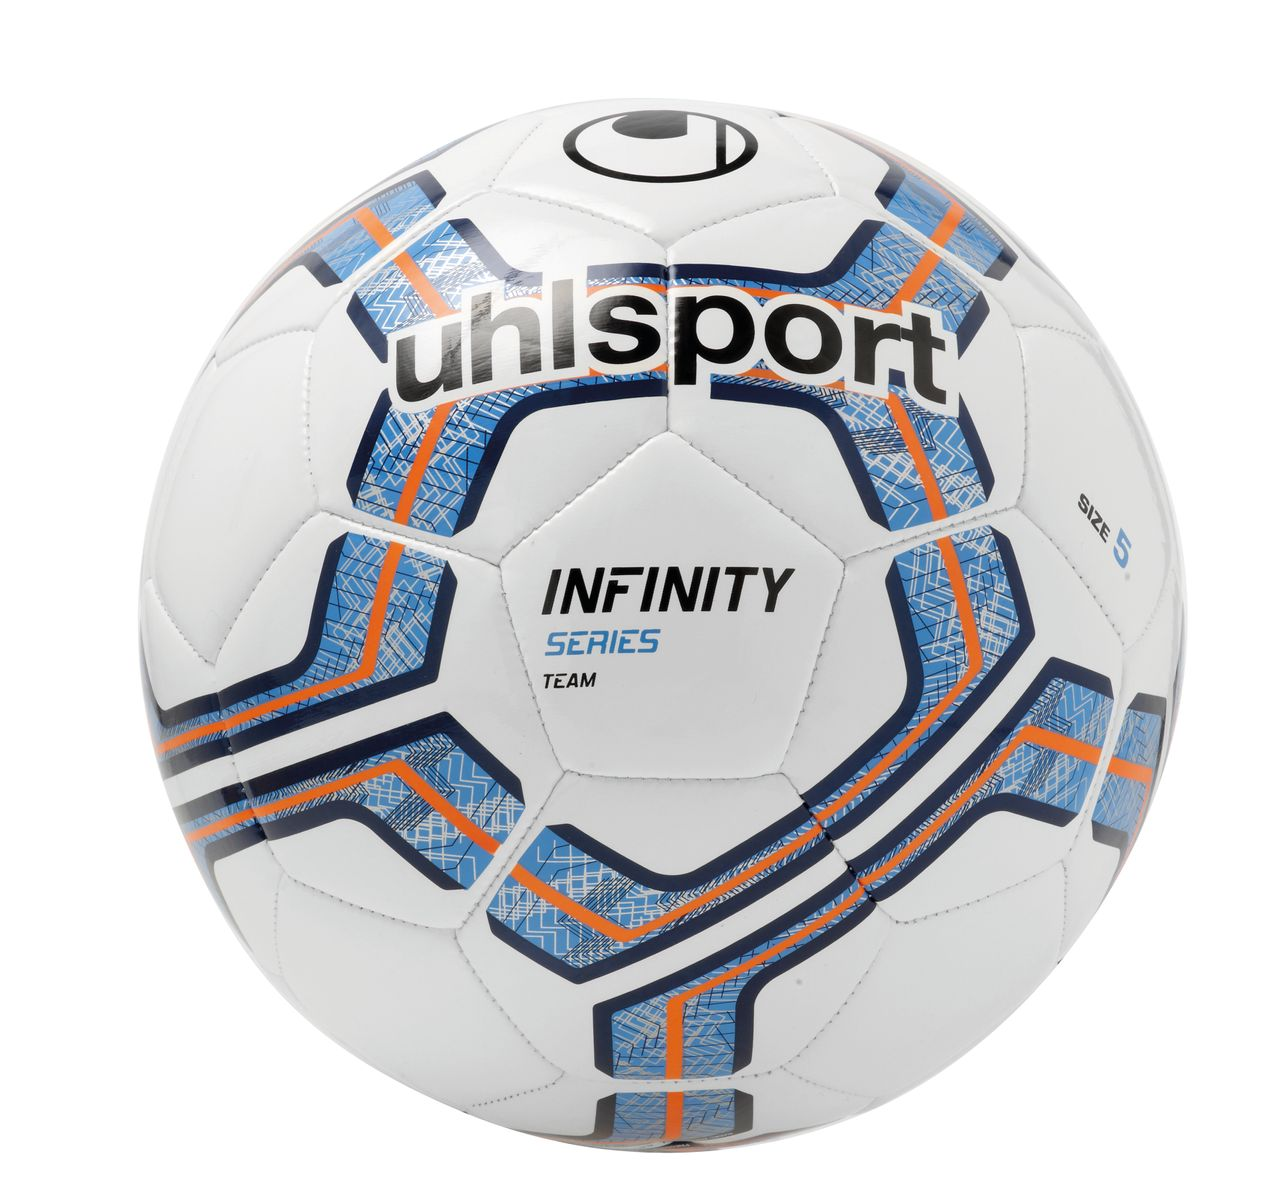 Uhlsport Trainingsball INFINITY TEAM